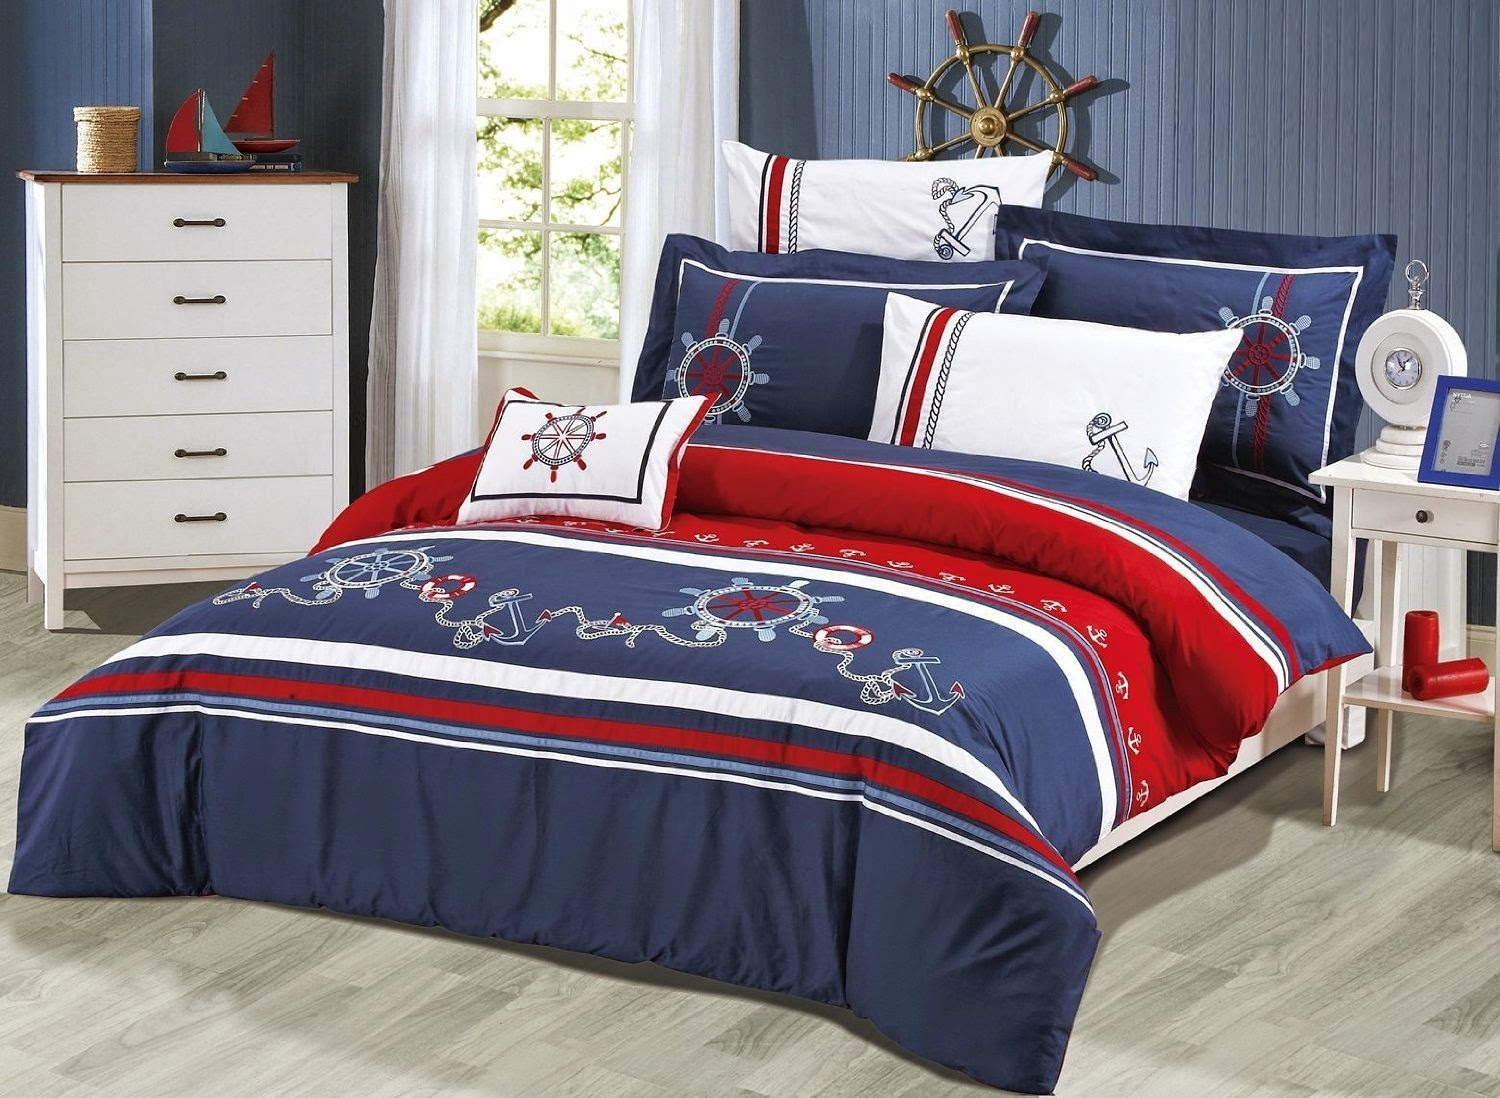 Nautical Themed Bedroom Sets » Hawaiian Coastal And Tropical ...